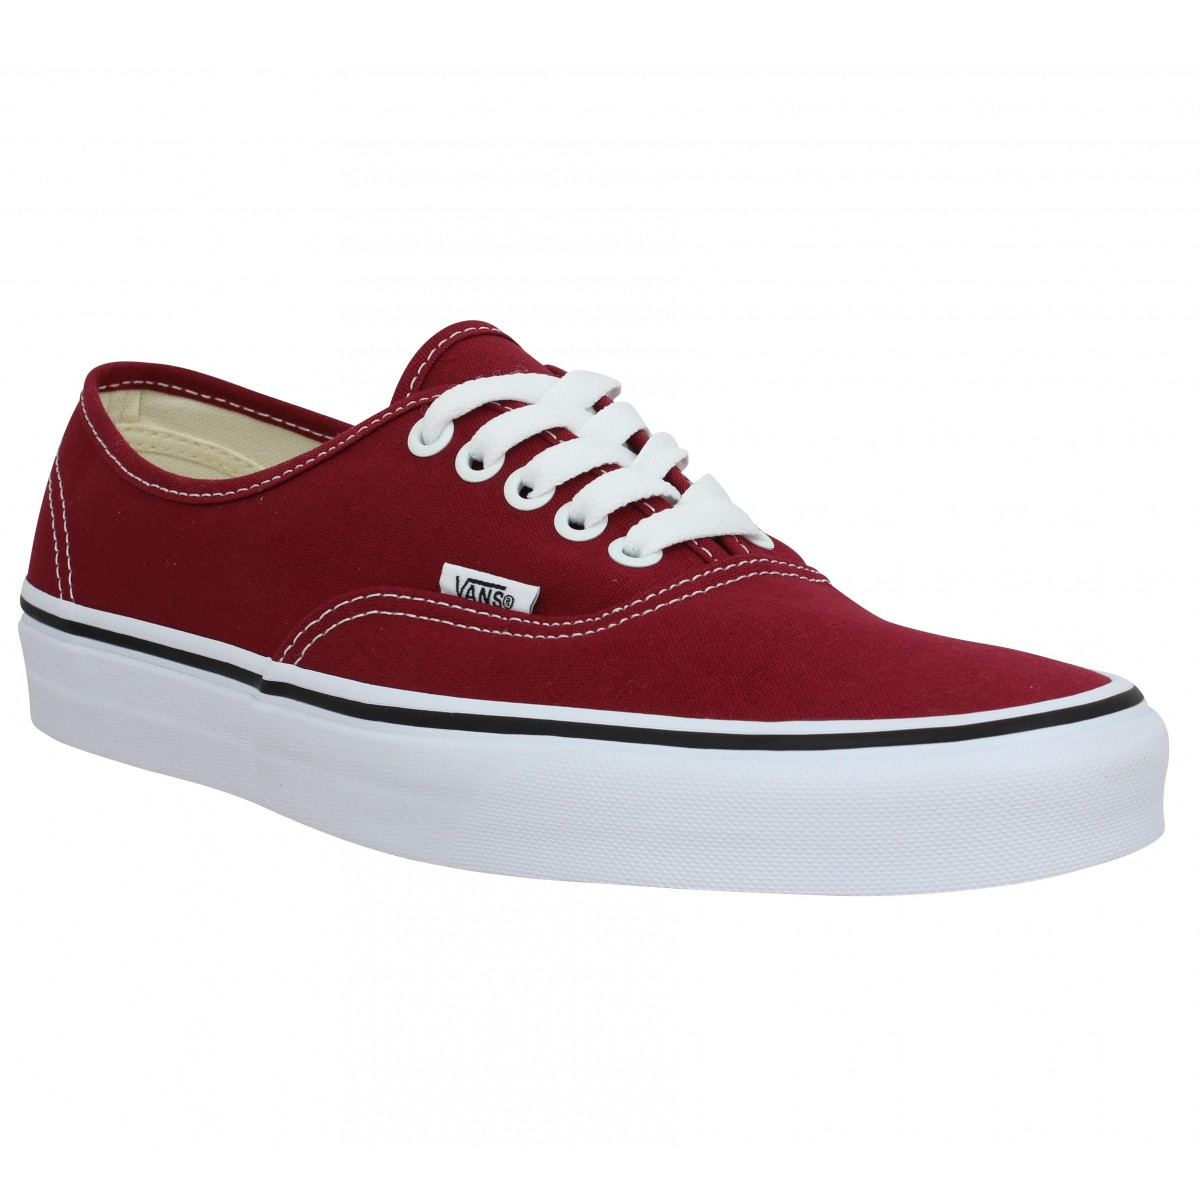 Baskets VANS Authentic toile Bordeaux